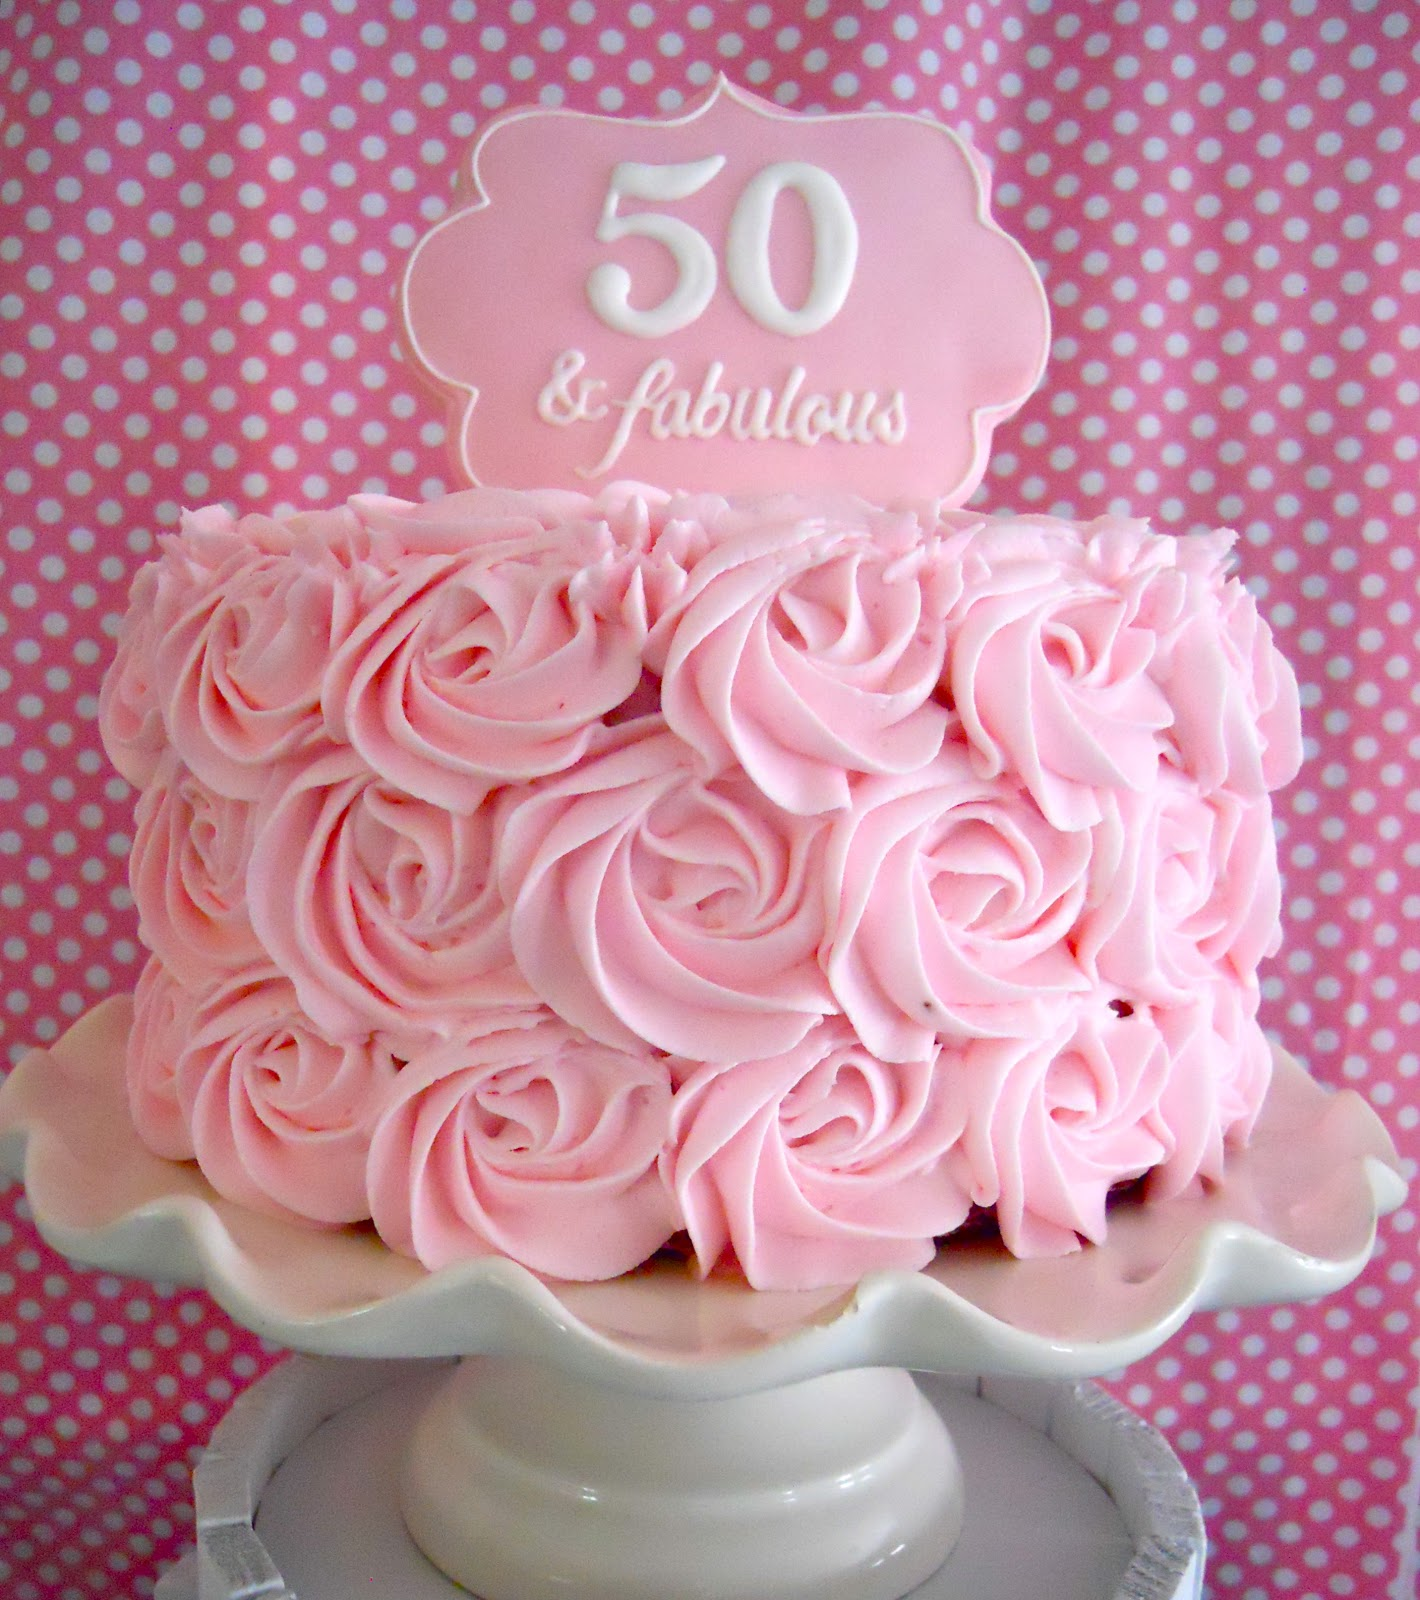 Fab 50 Birthday: Fifty And Fabulous Quotes. QuotesGram